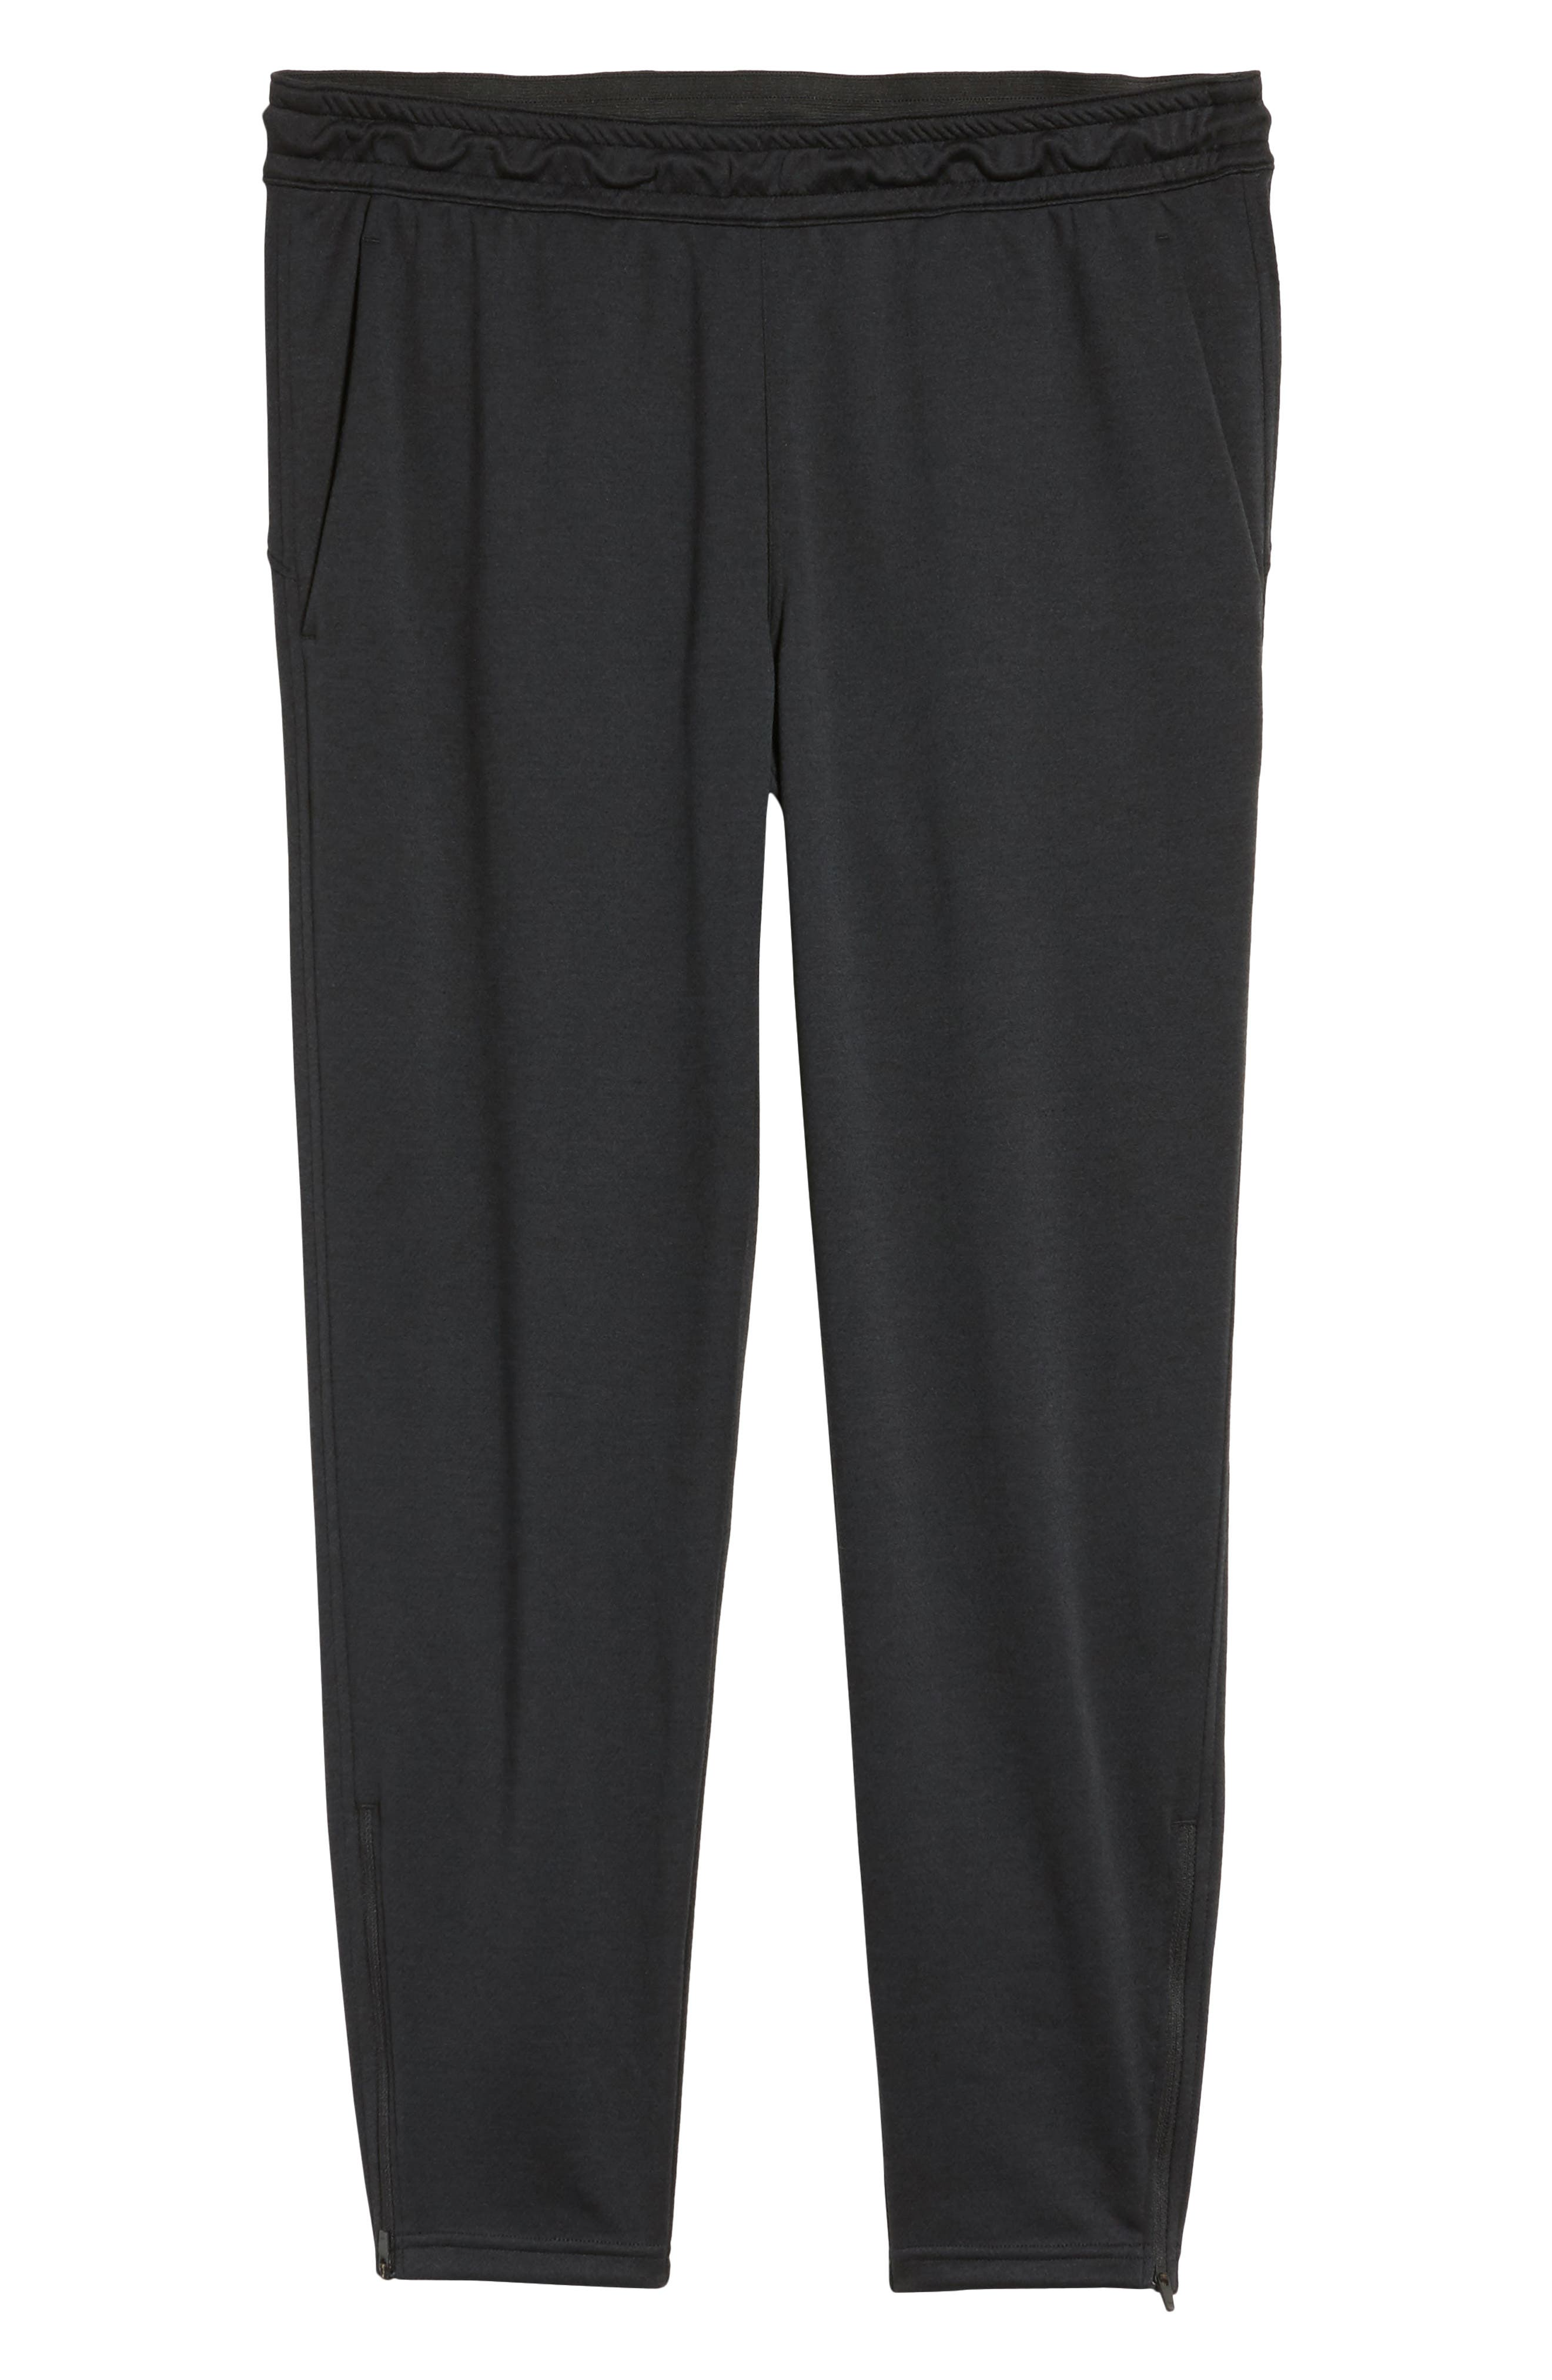 Cropped Jogger Pants,                             Alternate thumbnail 6, color,                             001